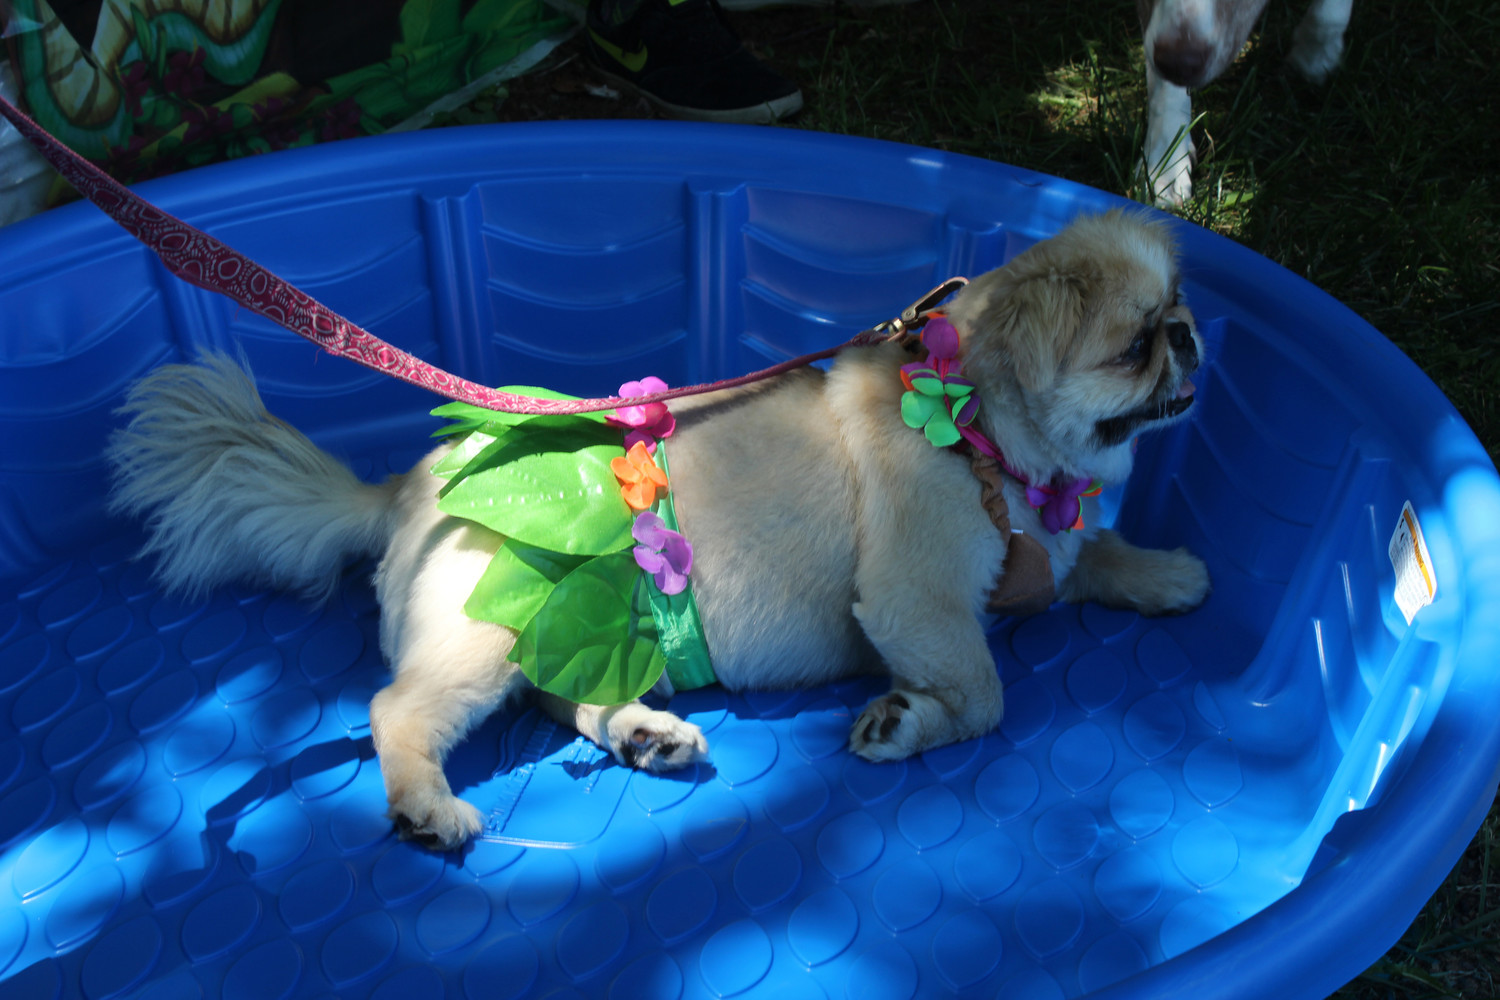 Mocha, a nine-year-old Pekingese, lounged in the shade in her flower lei and skirt and coconut bra.